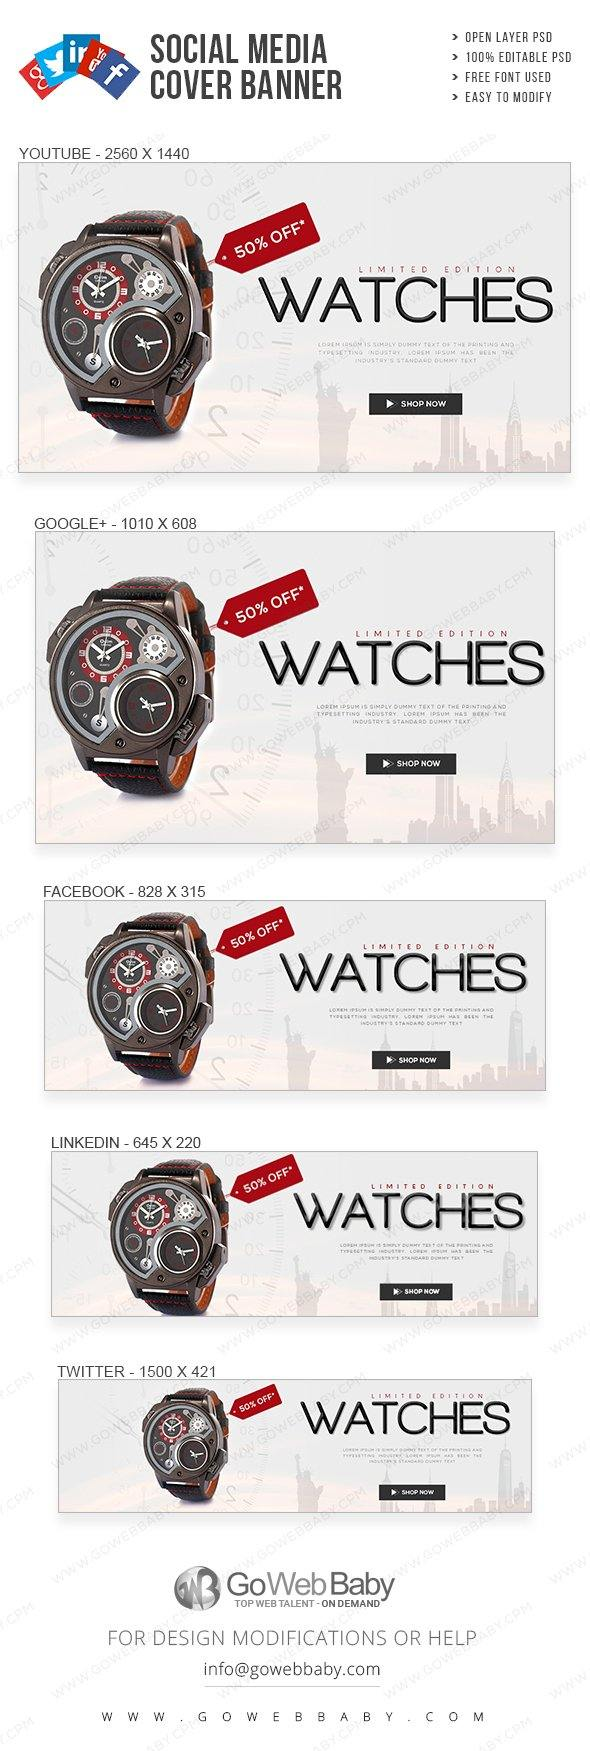 Social Media Cover Banner - Exclusive Watch Collection For Website Marketing - GoWebBaby.Com